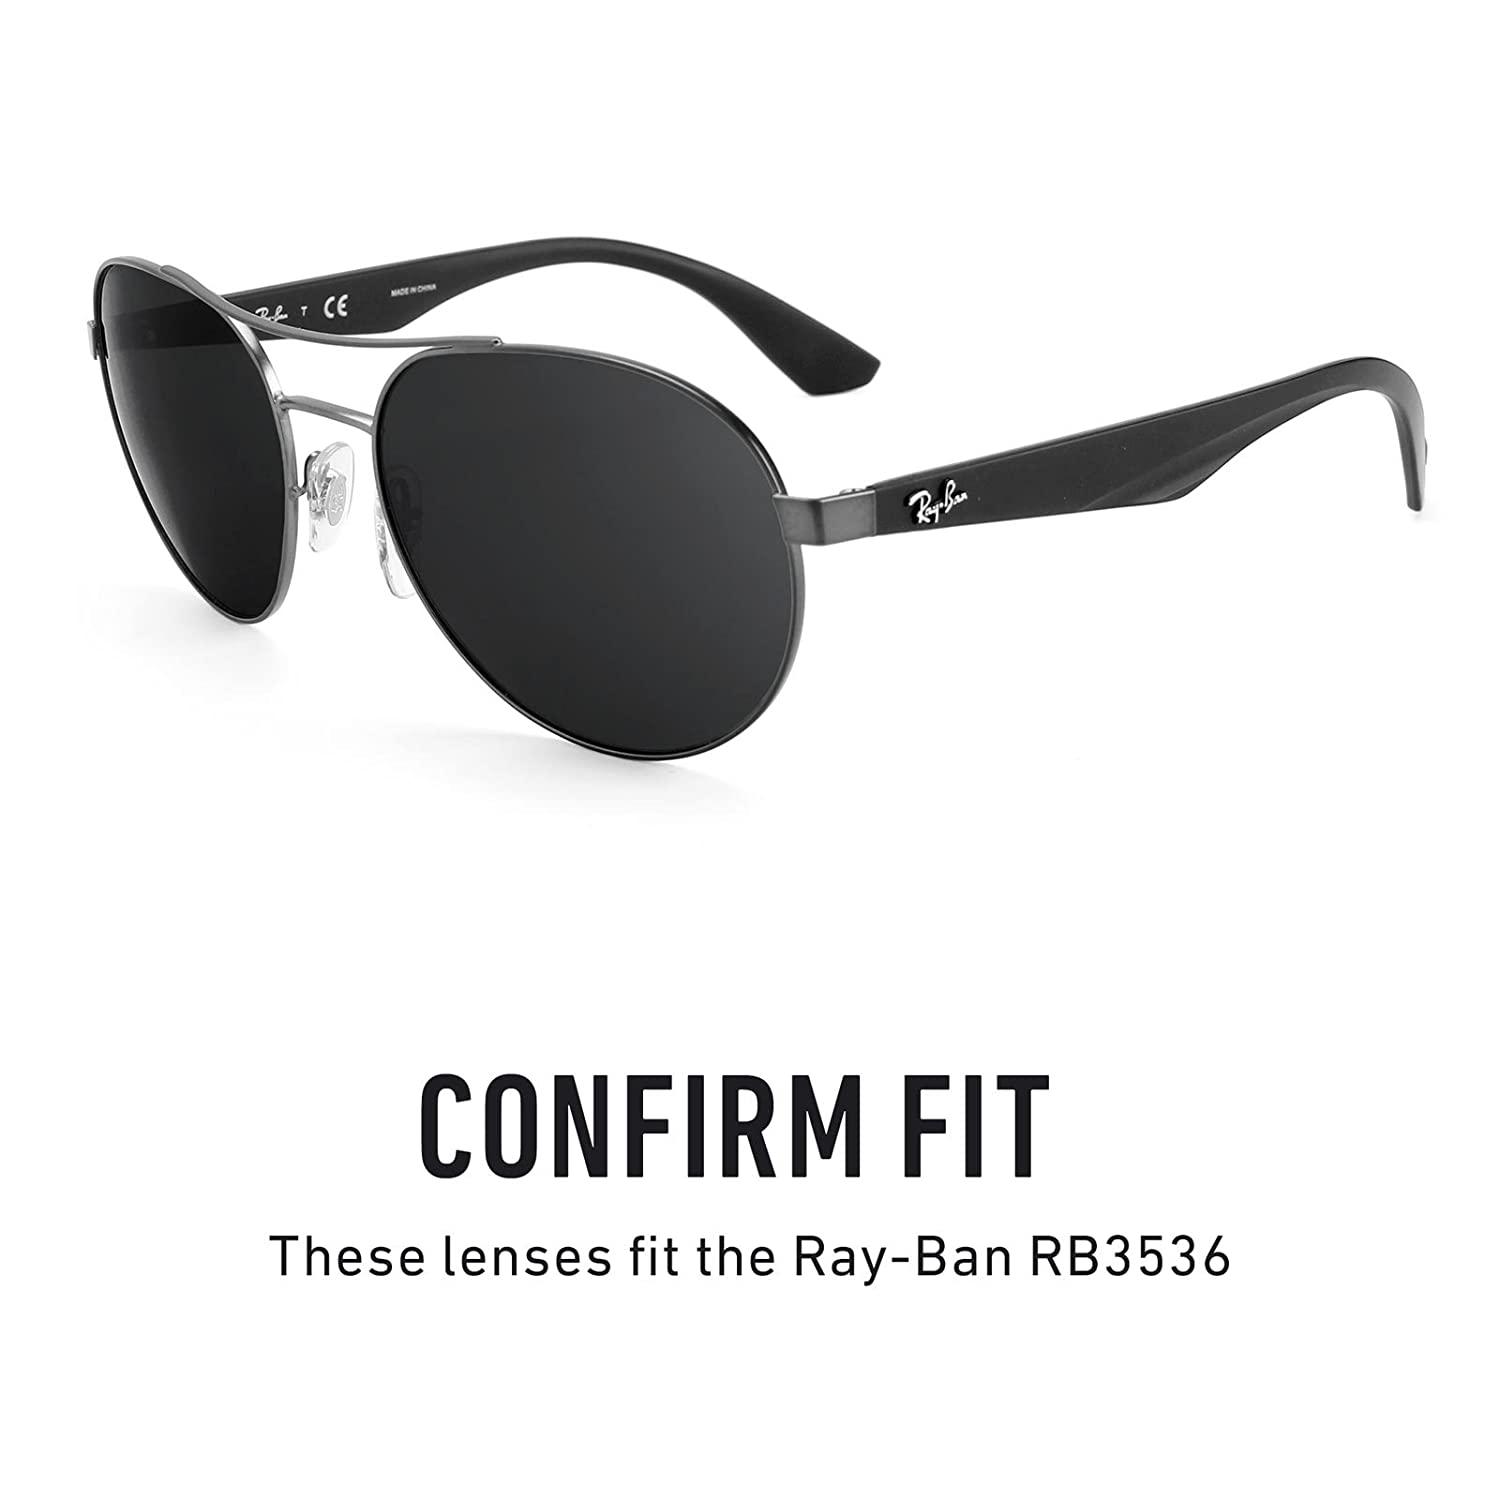 617482a1c6 Revant Polarized Replacement Lenses for Ray-Ban RB3536 Black Chrome  MirrorShield®  Amazon.co.uk  Clothing